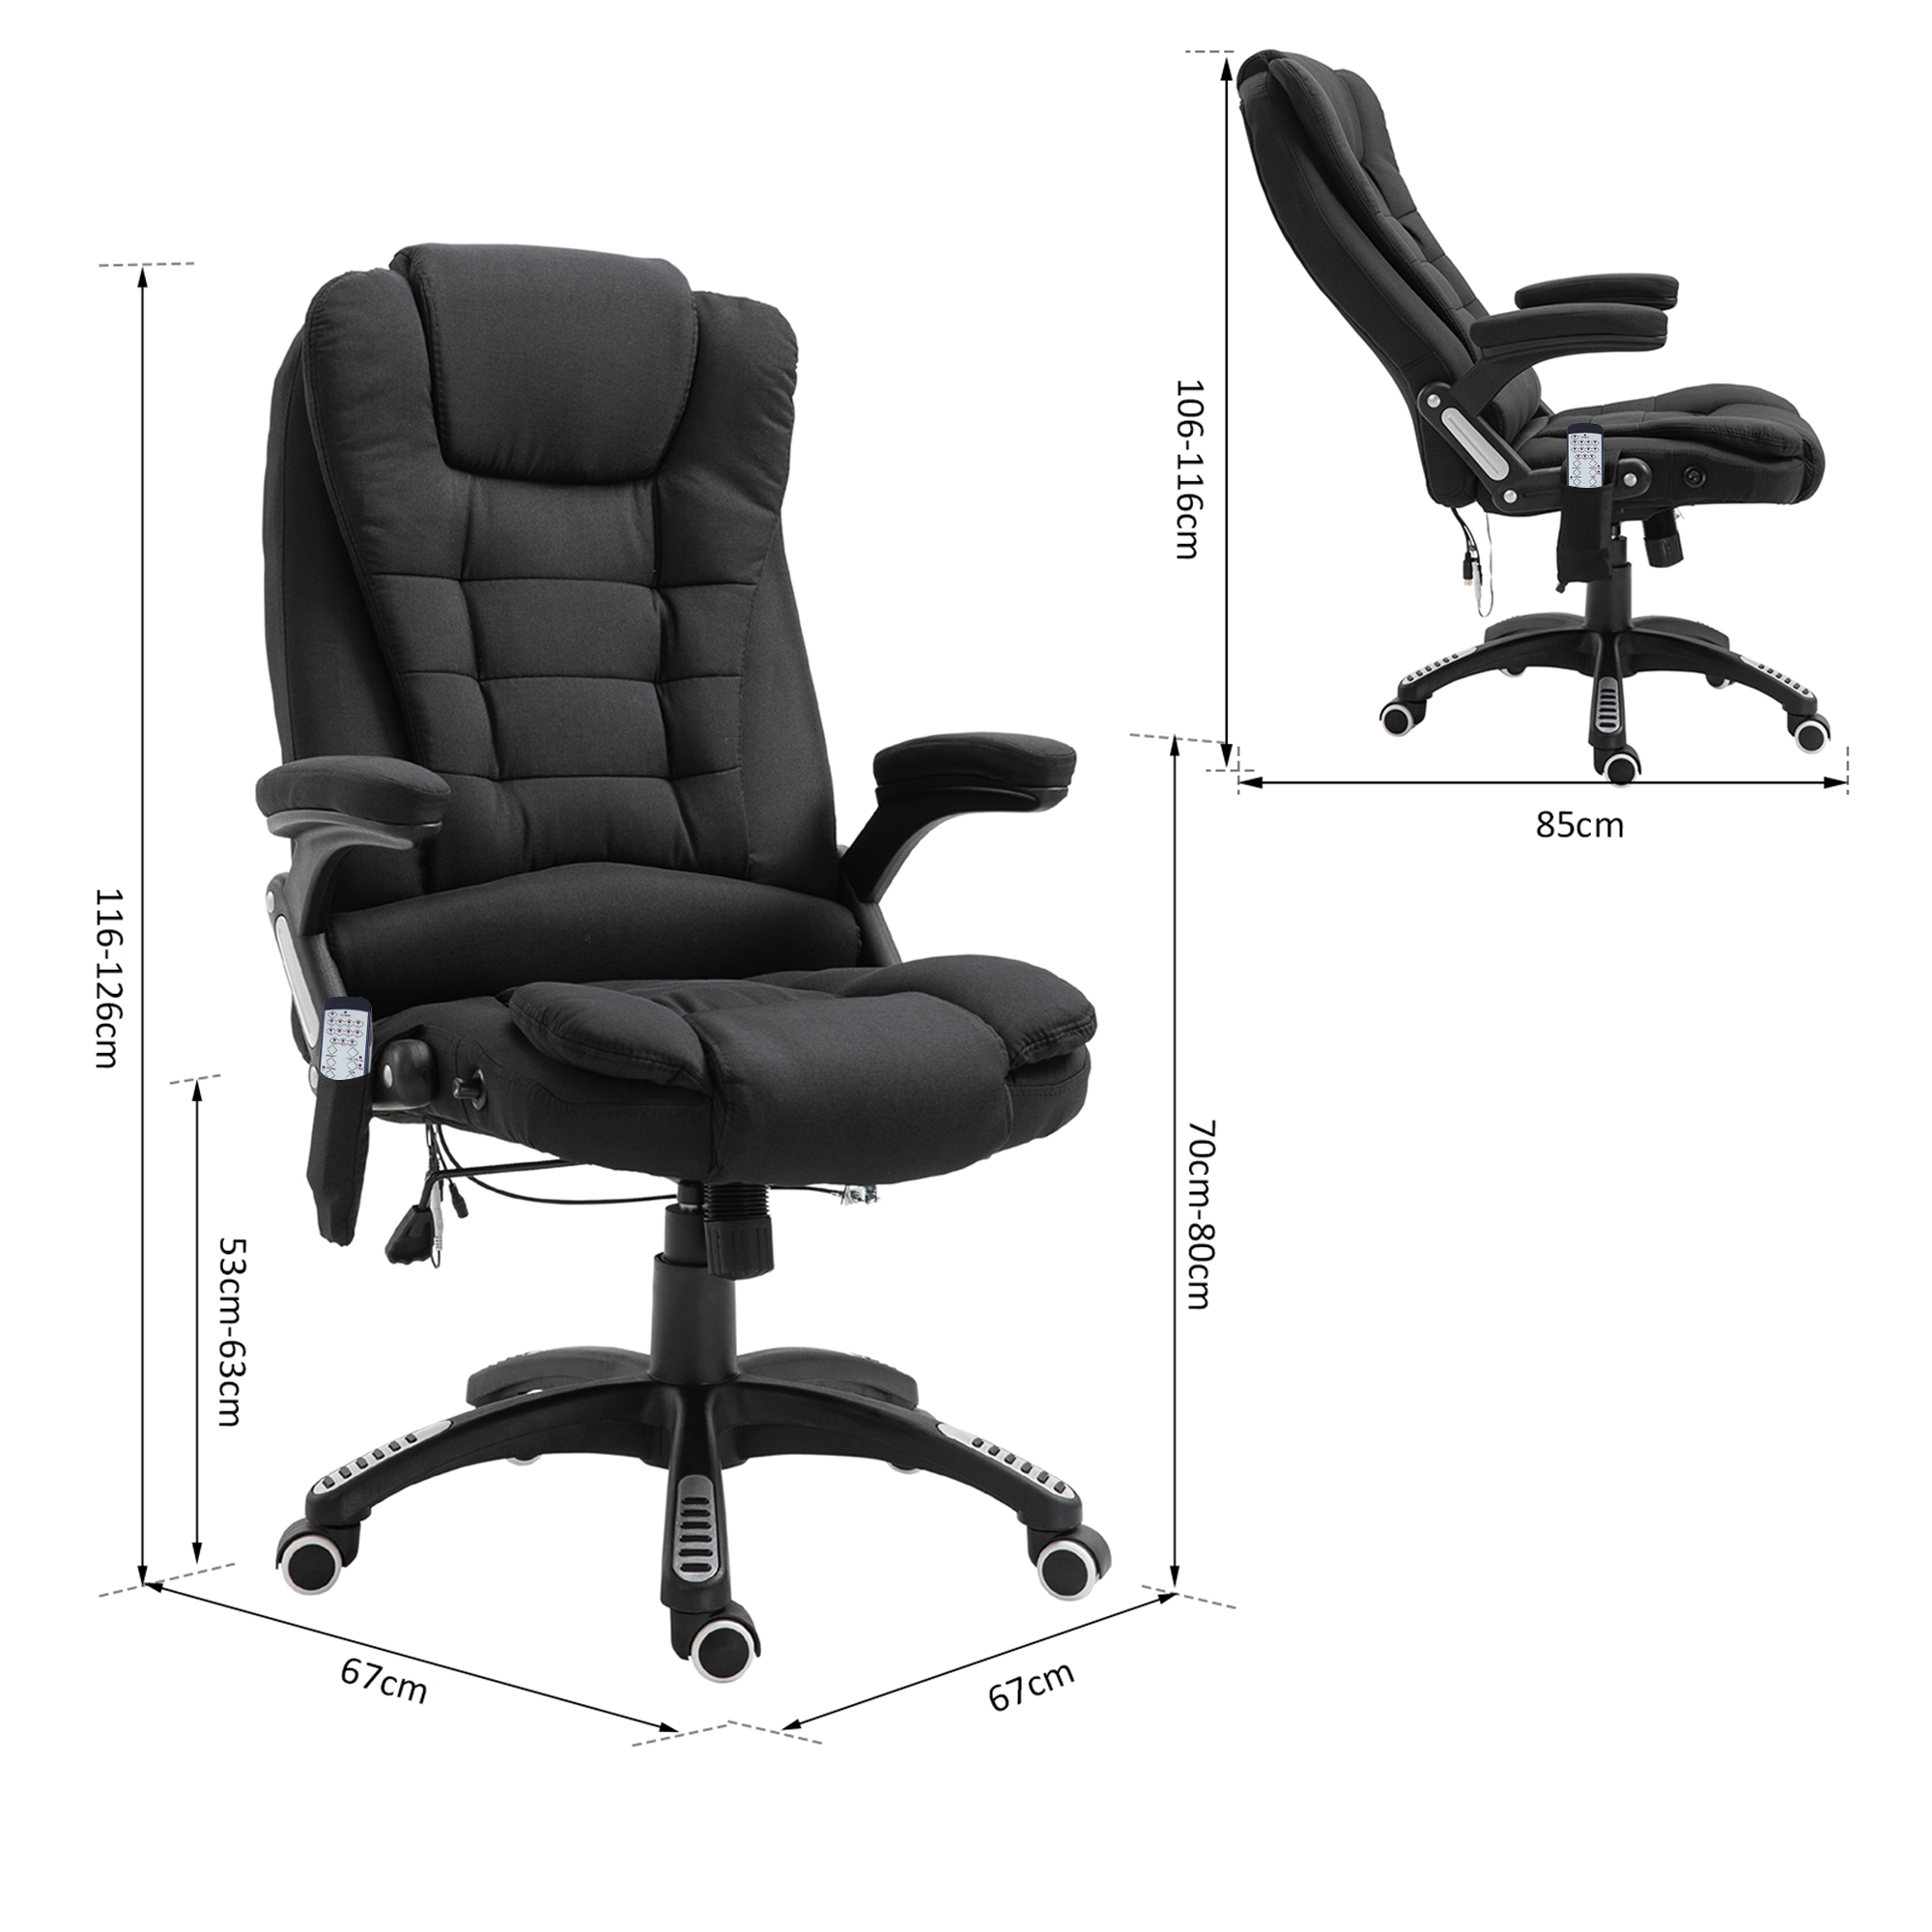 thumbnail 3 - Executive Reclining Chair 130°w/6 Heating Massage Points Relaxing Headrest